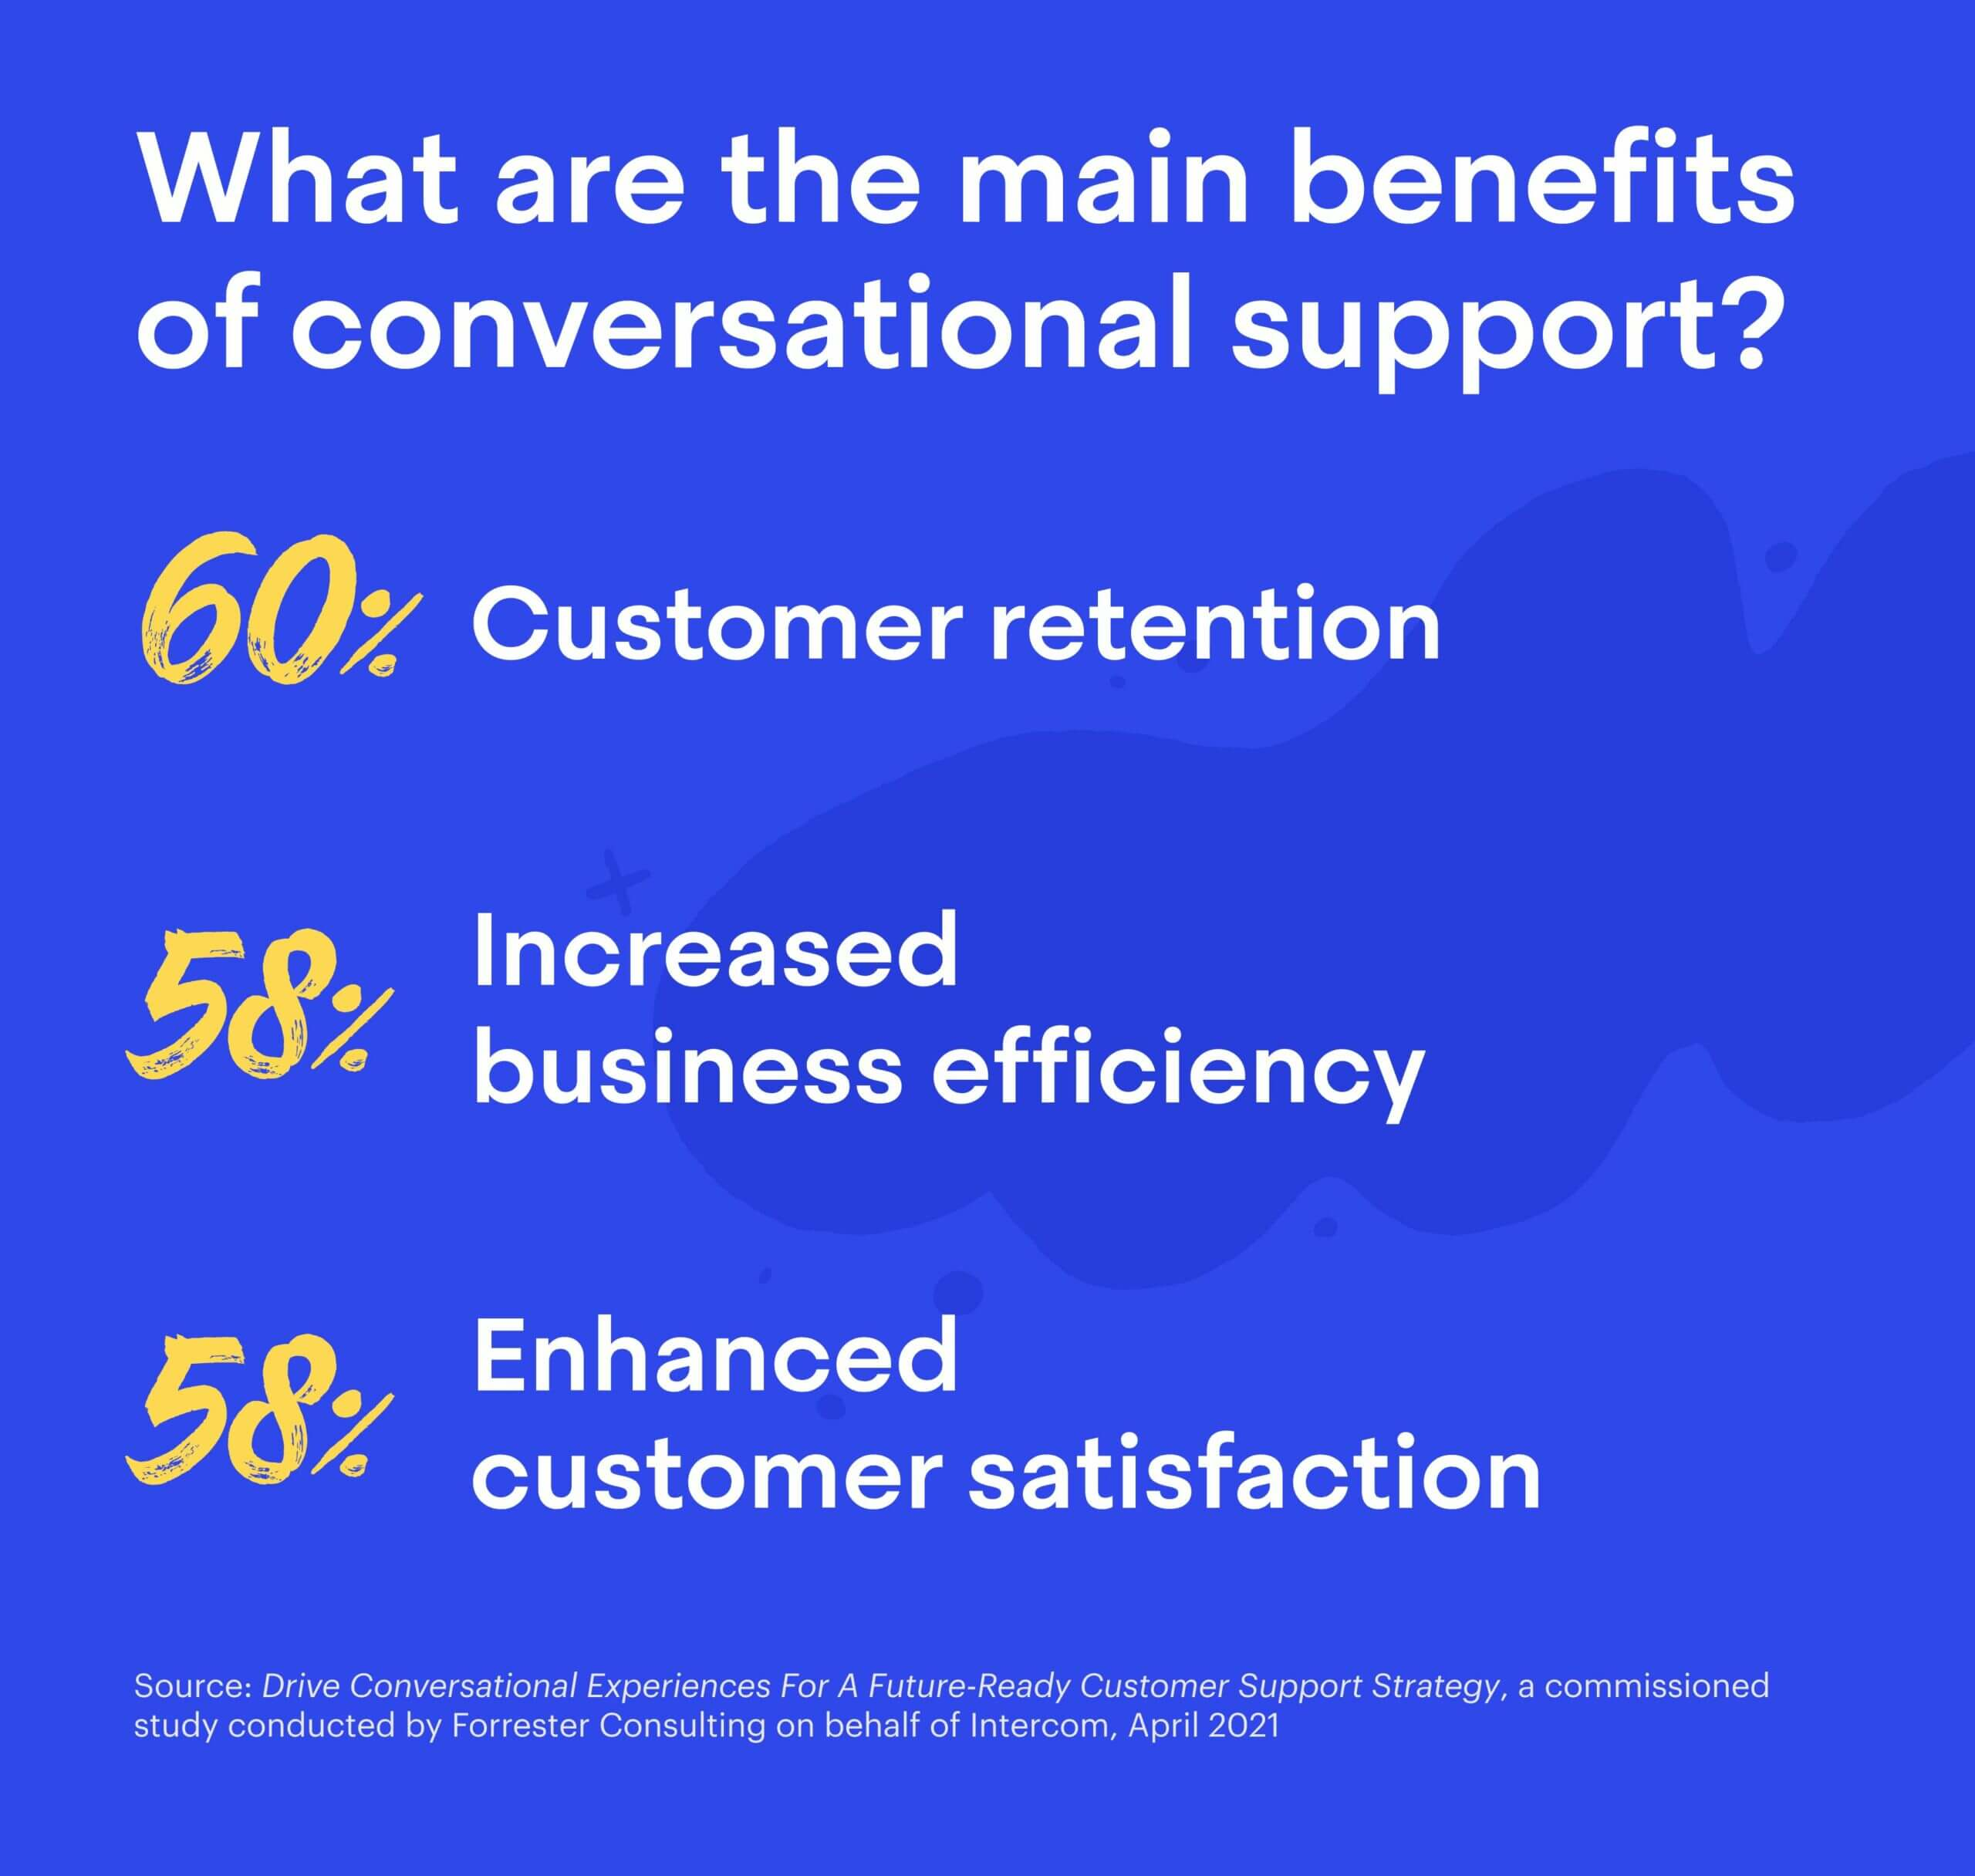 What are the main benefits of conversational support?